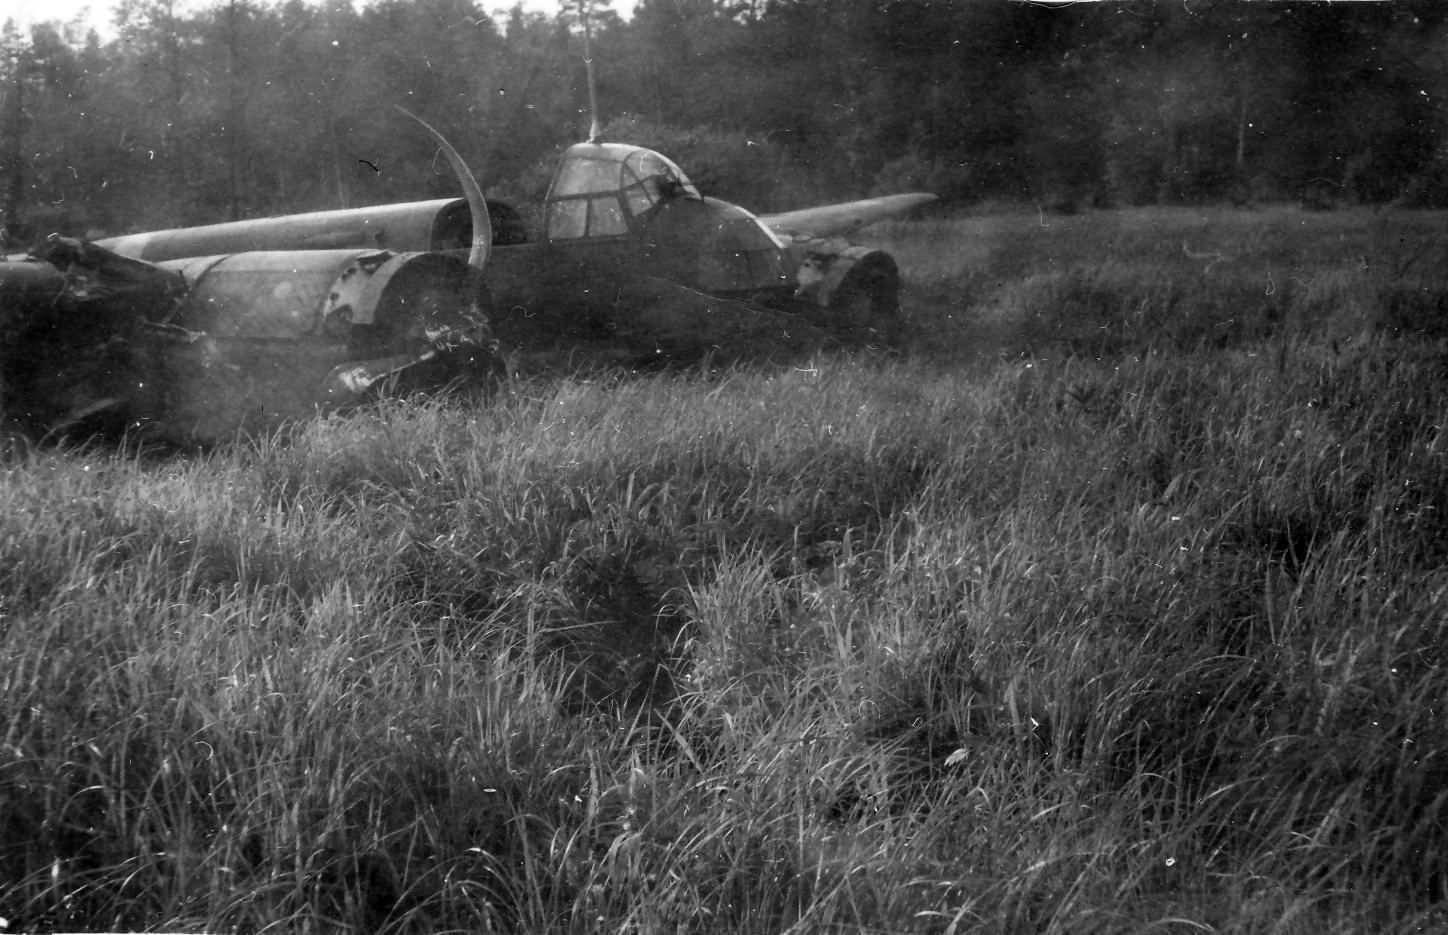 Ju88 destroyed